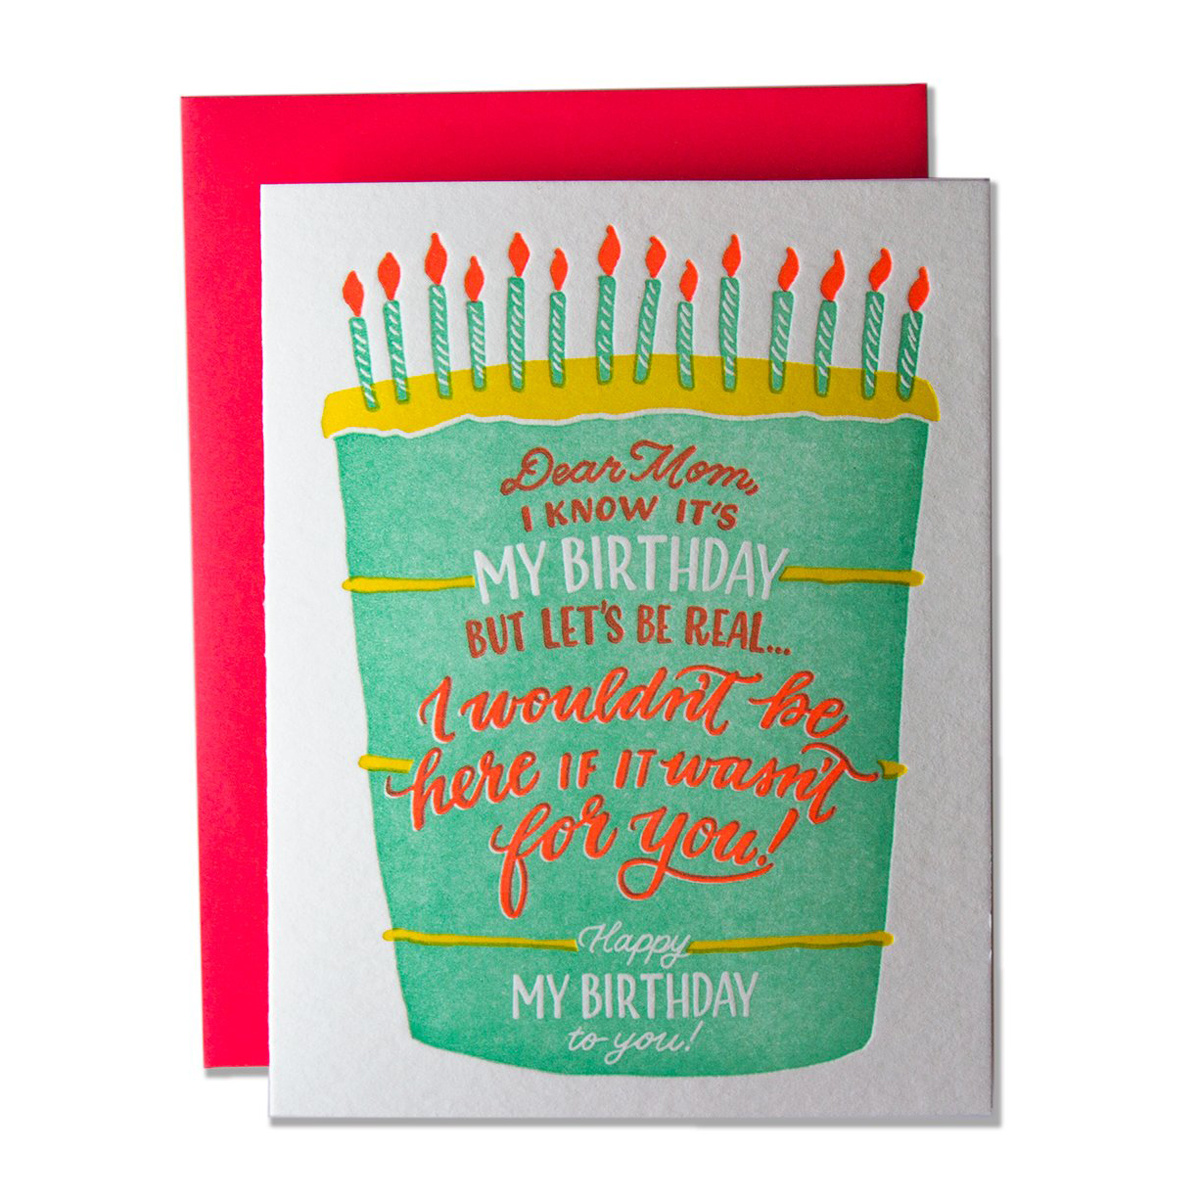 Ladyfingers Letterpress - LF Mom My Birthday